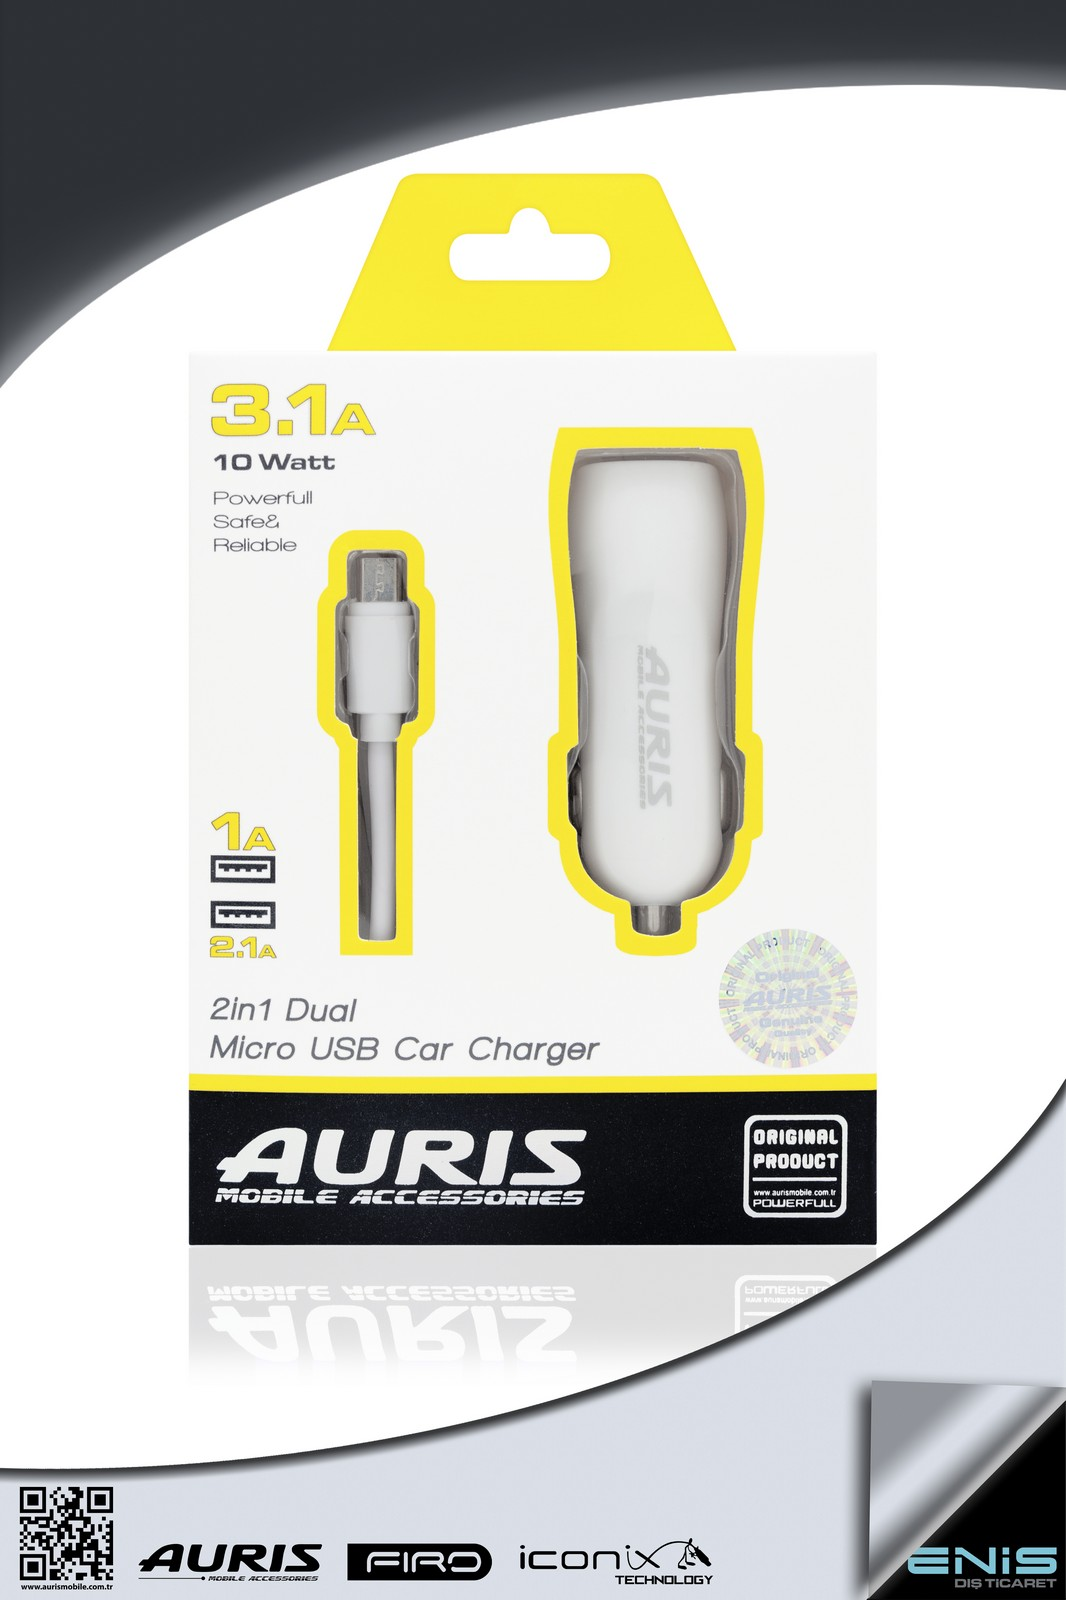 2in1 DUAL MICRO USB CAR CHARGER 3.1 A